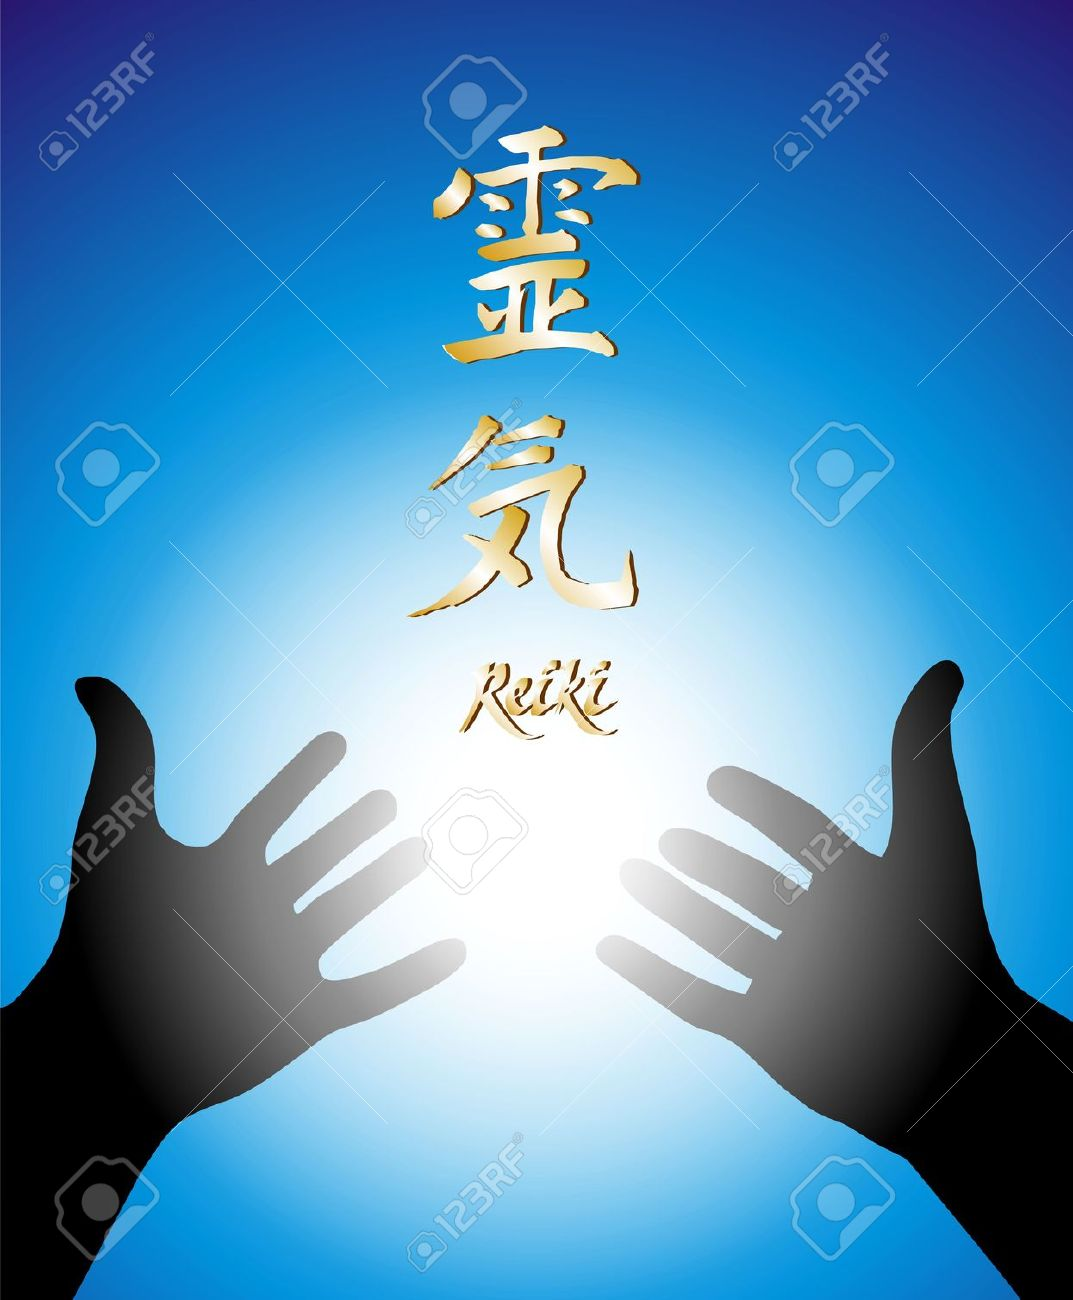 illustration of two hands and calligraphic symbol of Reiki over a blue background Stock Illustration - 4763531